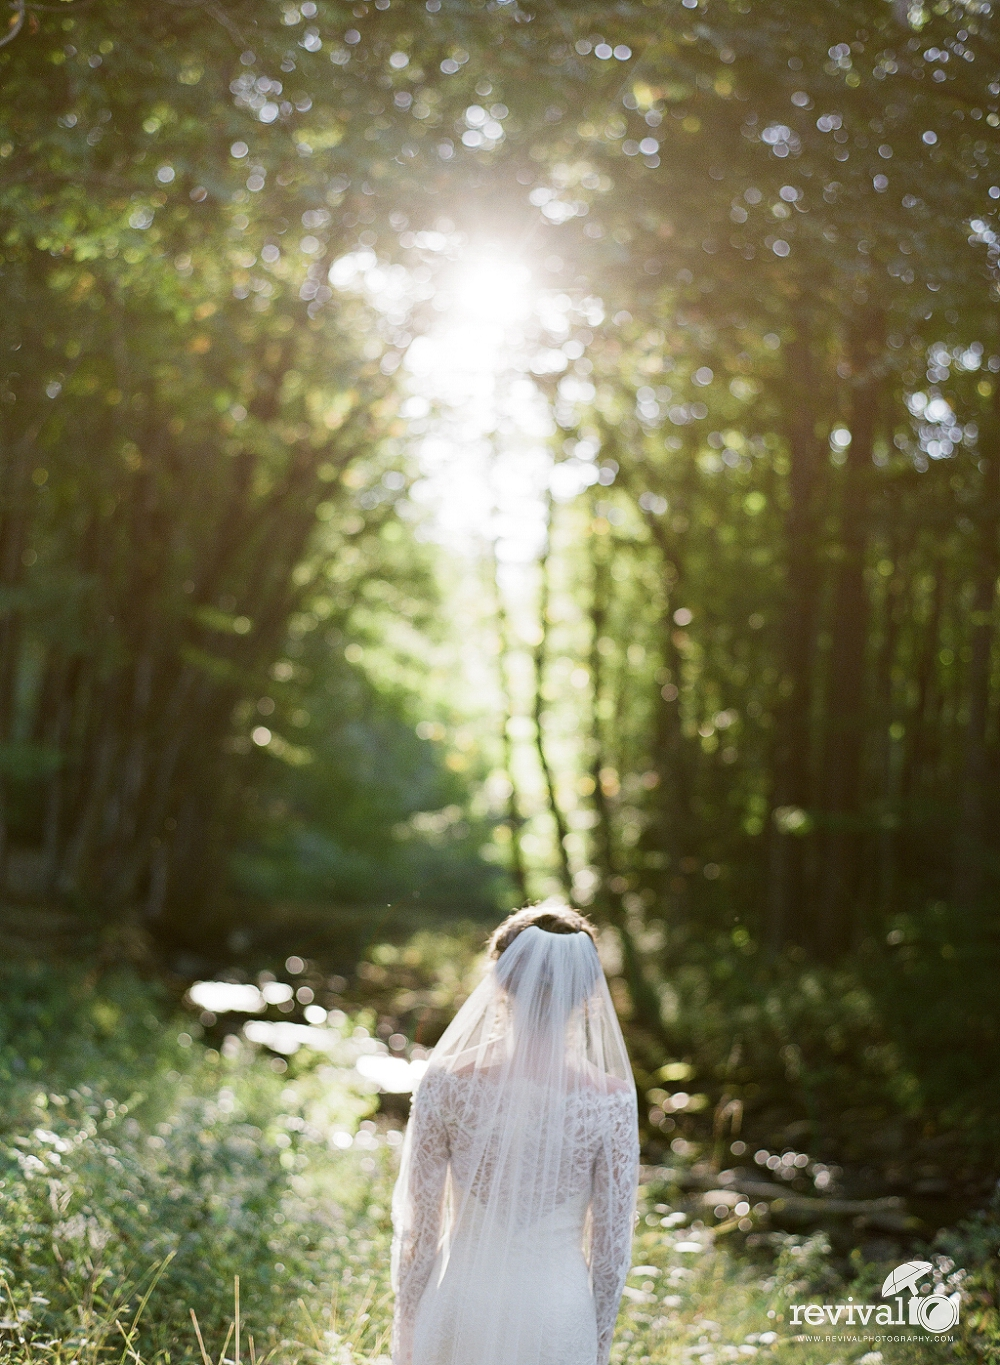 Kendra's Mountain Woodlands Bridal Session in Boone, NC Photography by Revival Photography www.revivalphotography.com